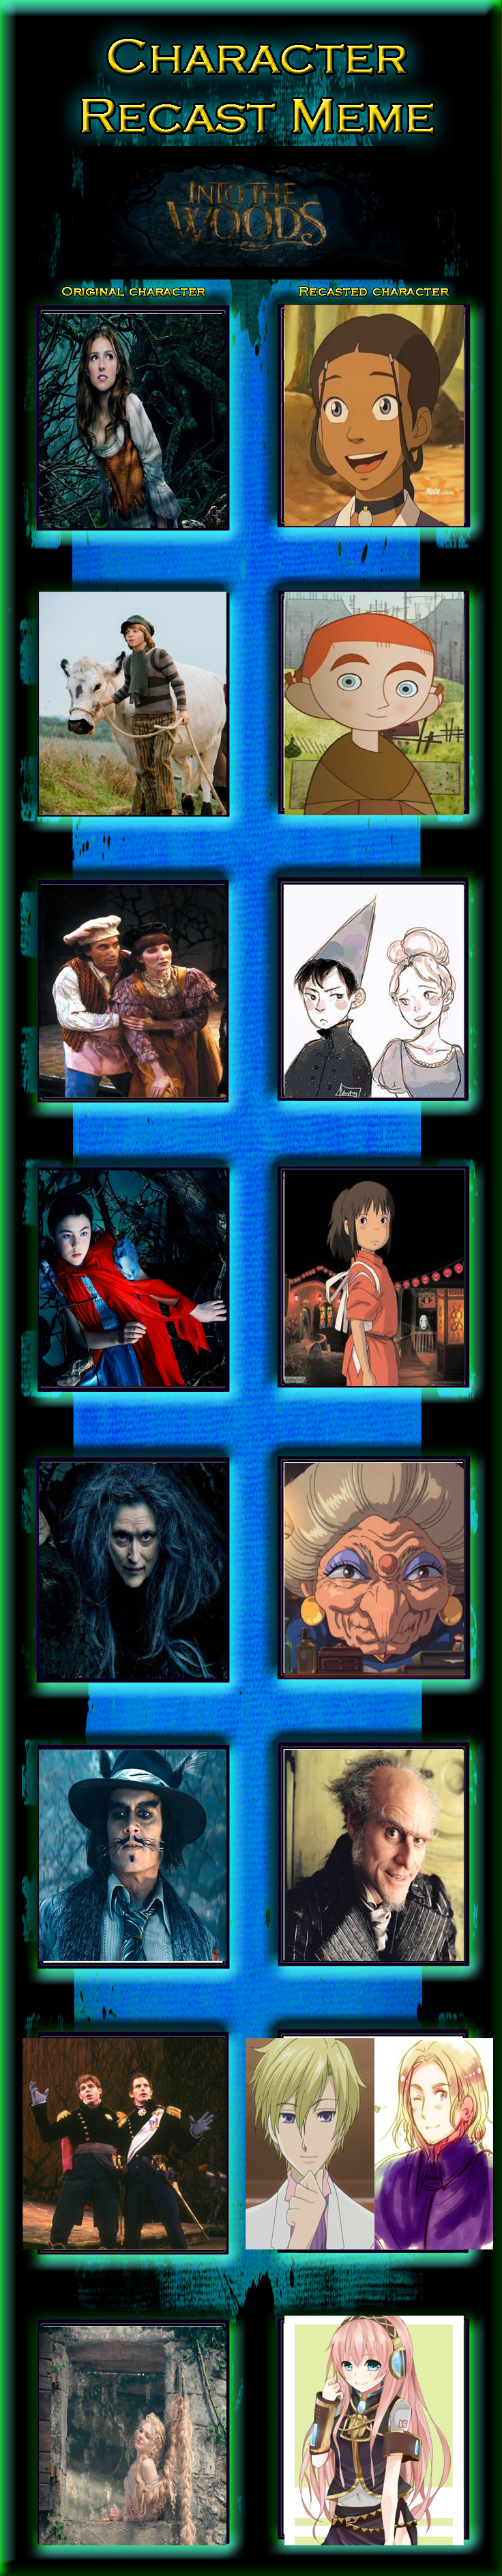 Into The Woods Character Recast Meme